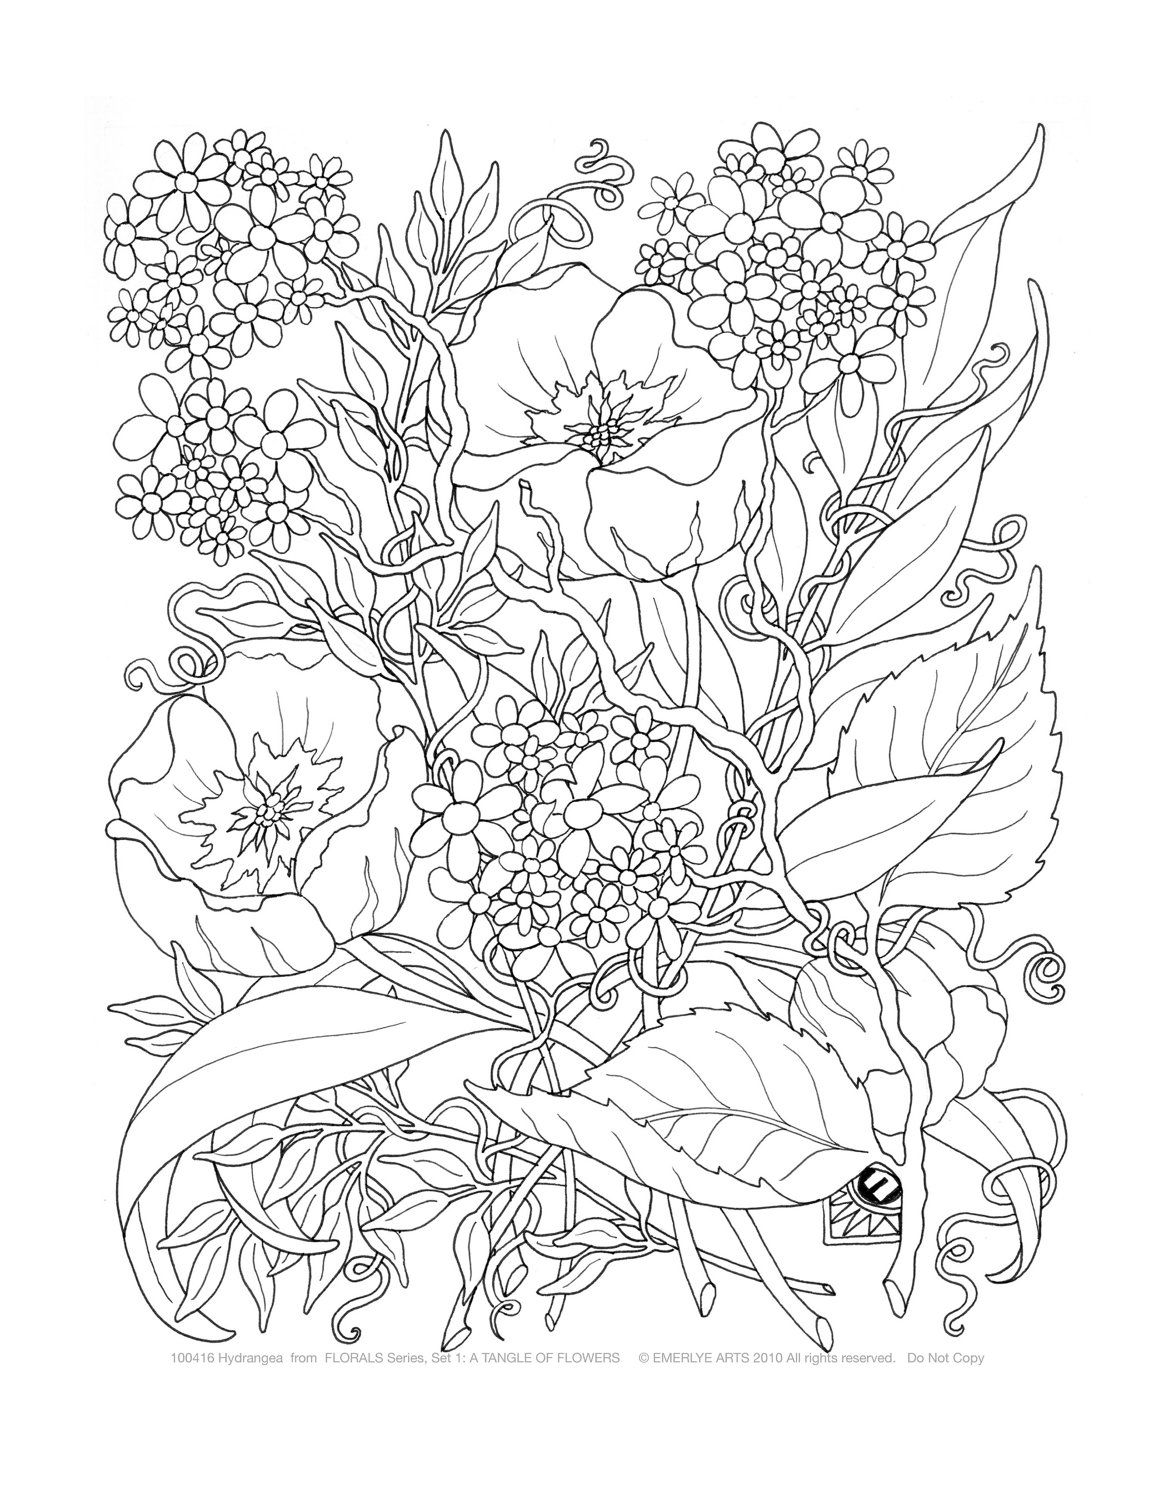 Colouring in for adults why - Adult Coloring Adult Coloring Pages A Tangle Of Flowers Set Of 8 By Emerlyearts